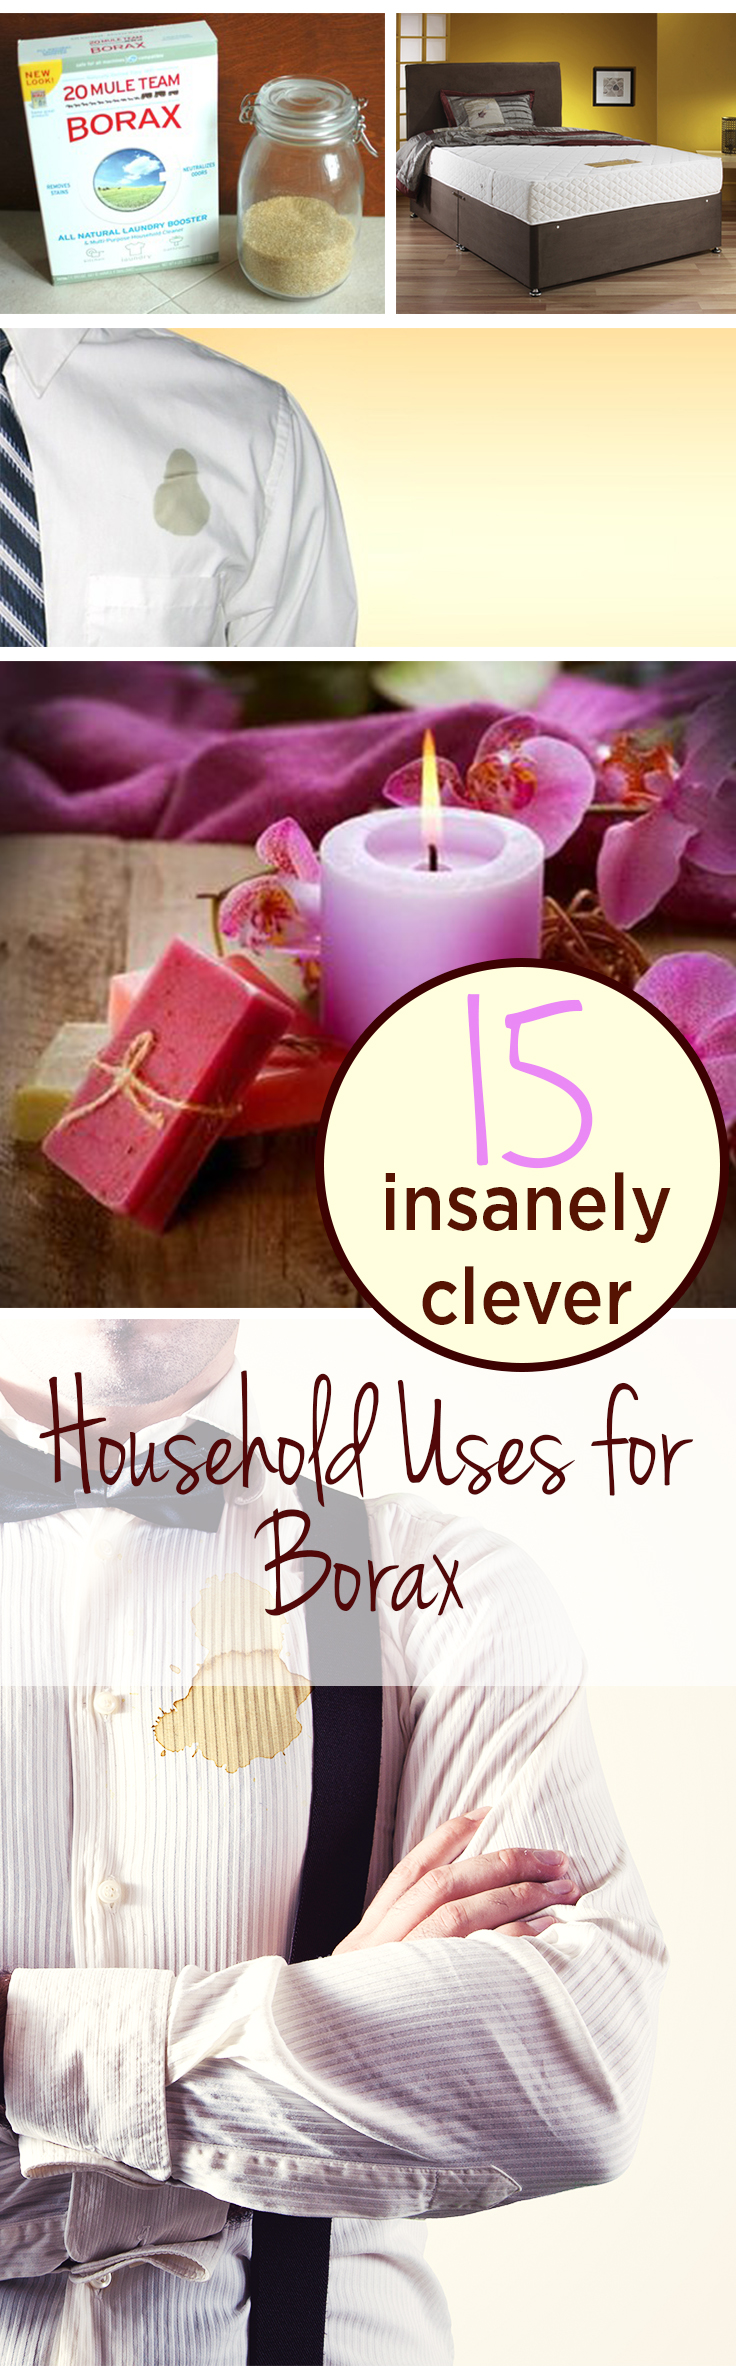 15 Insanely Clever Household Uses for Borax